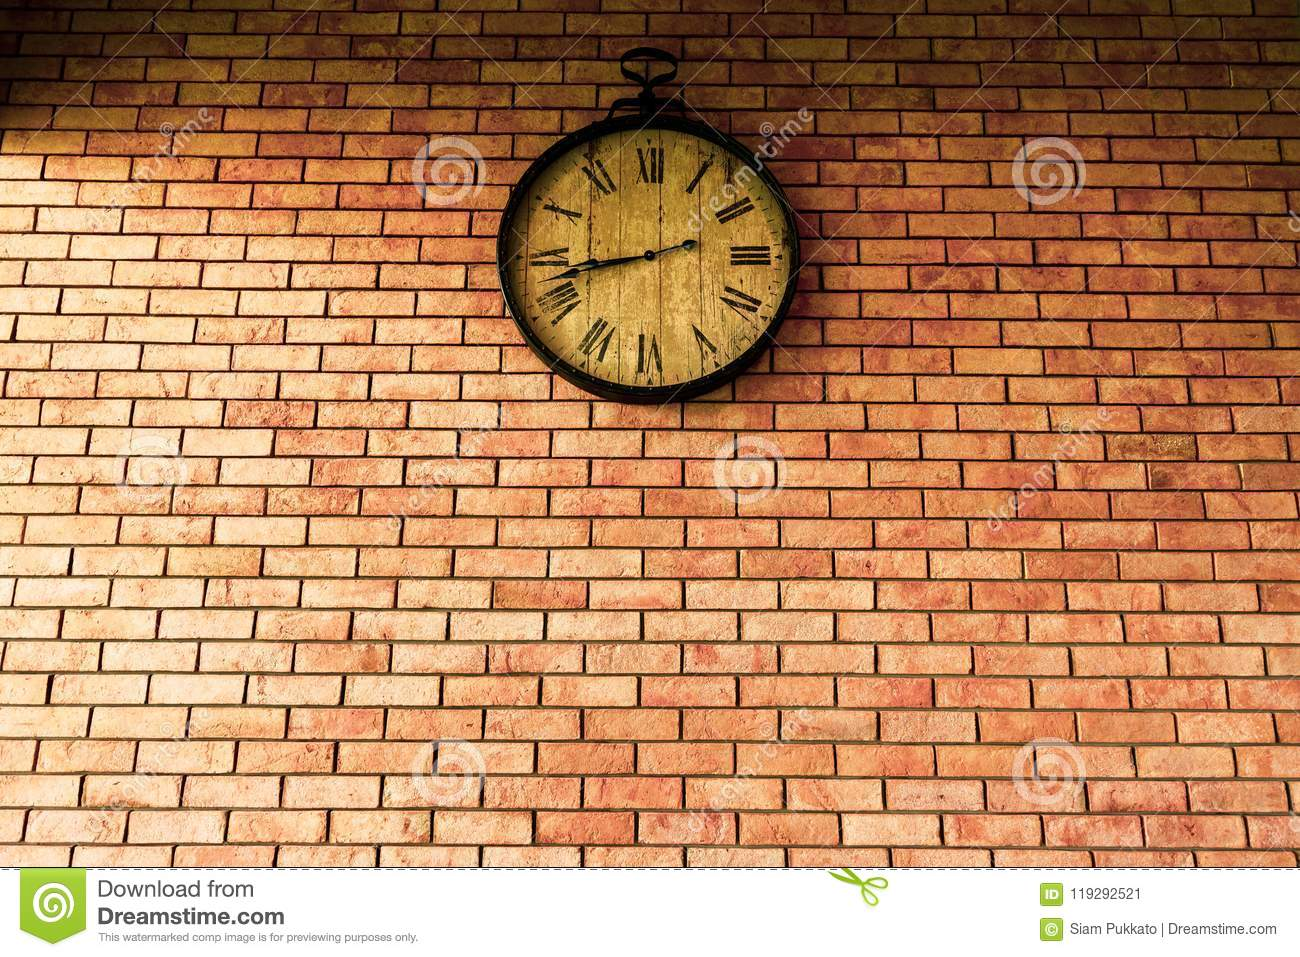 Wall Clock vintage retro styles hanging on the brick wall.